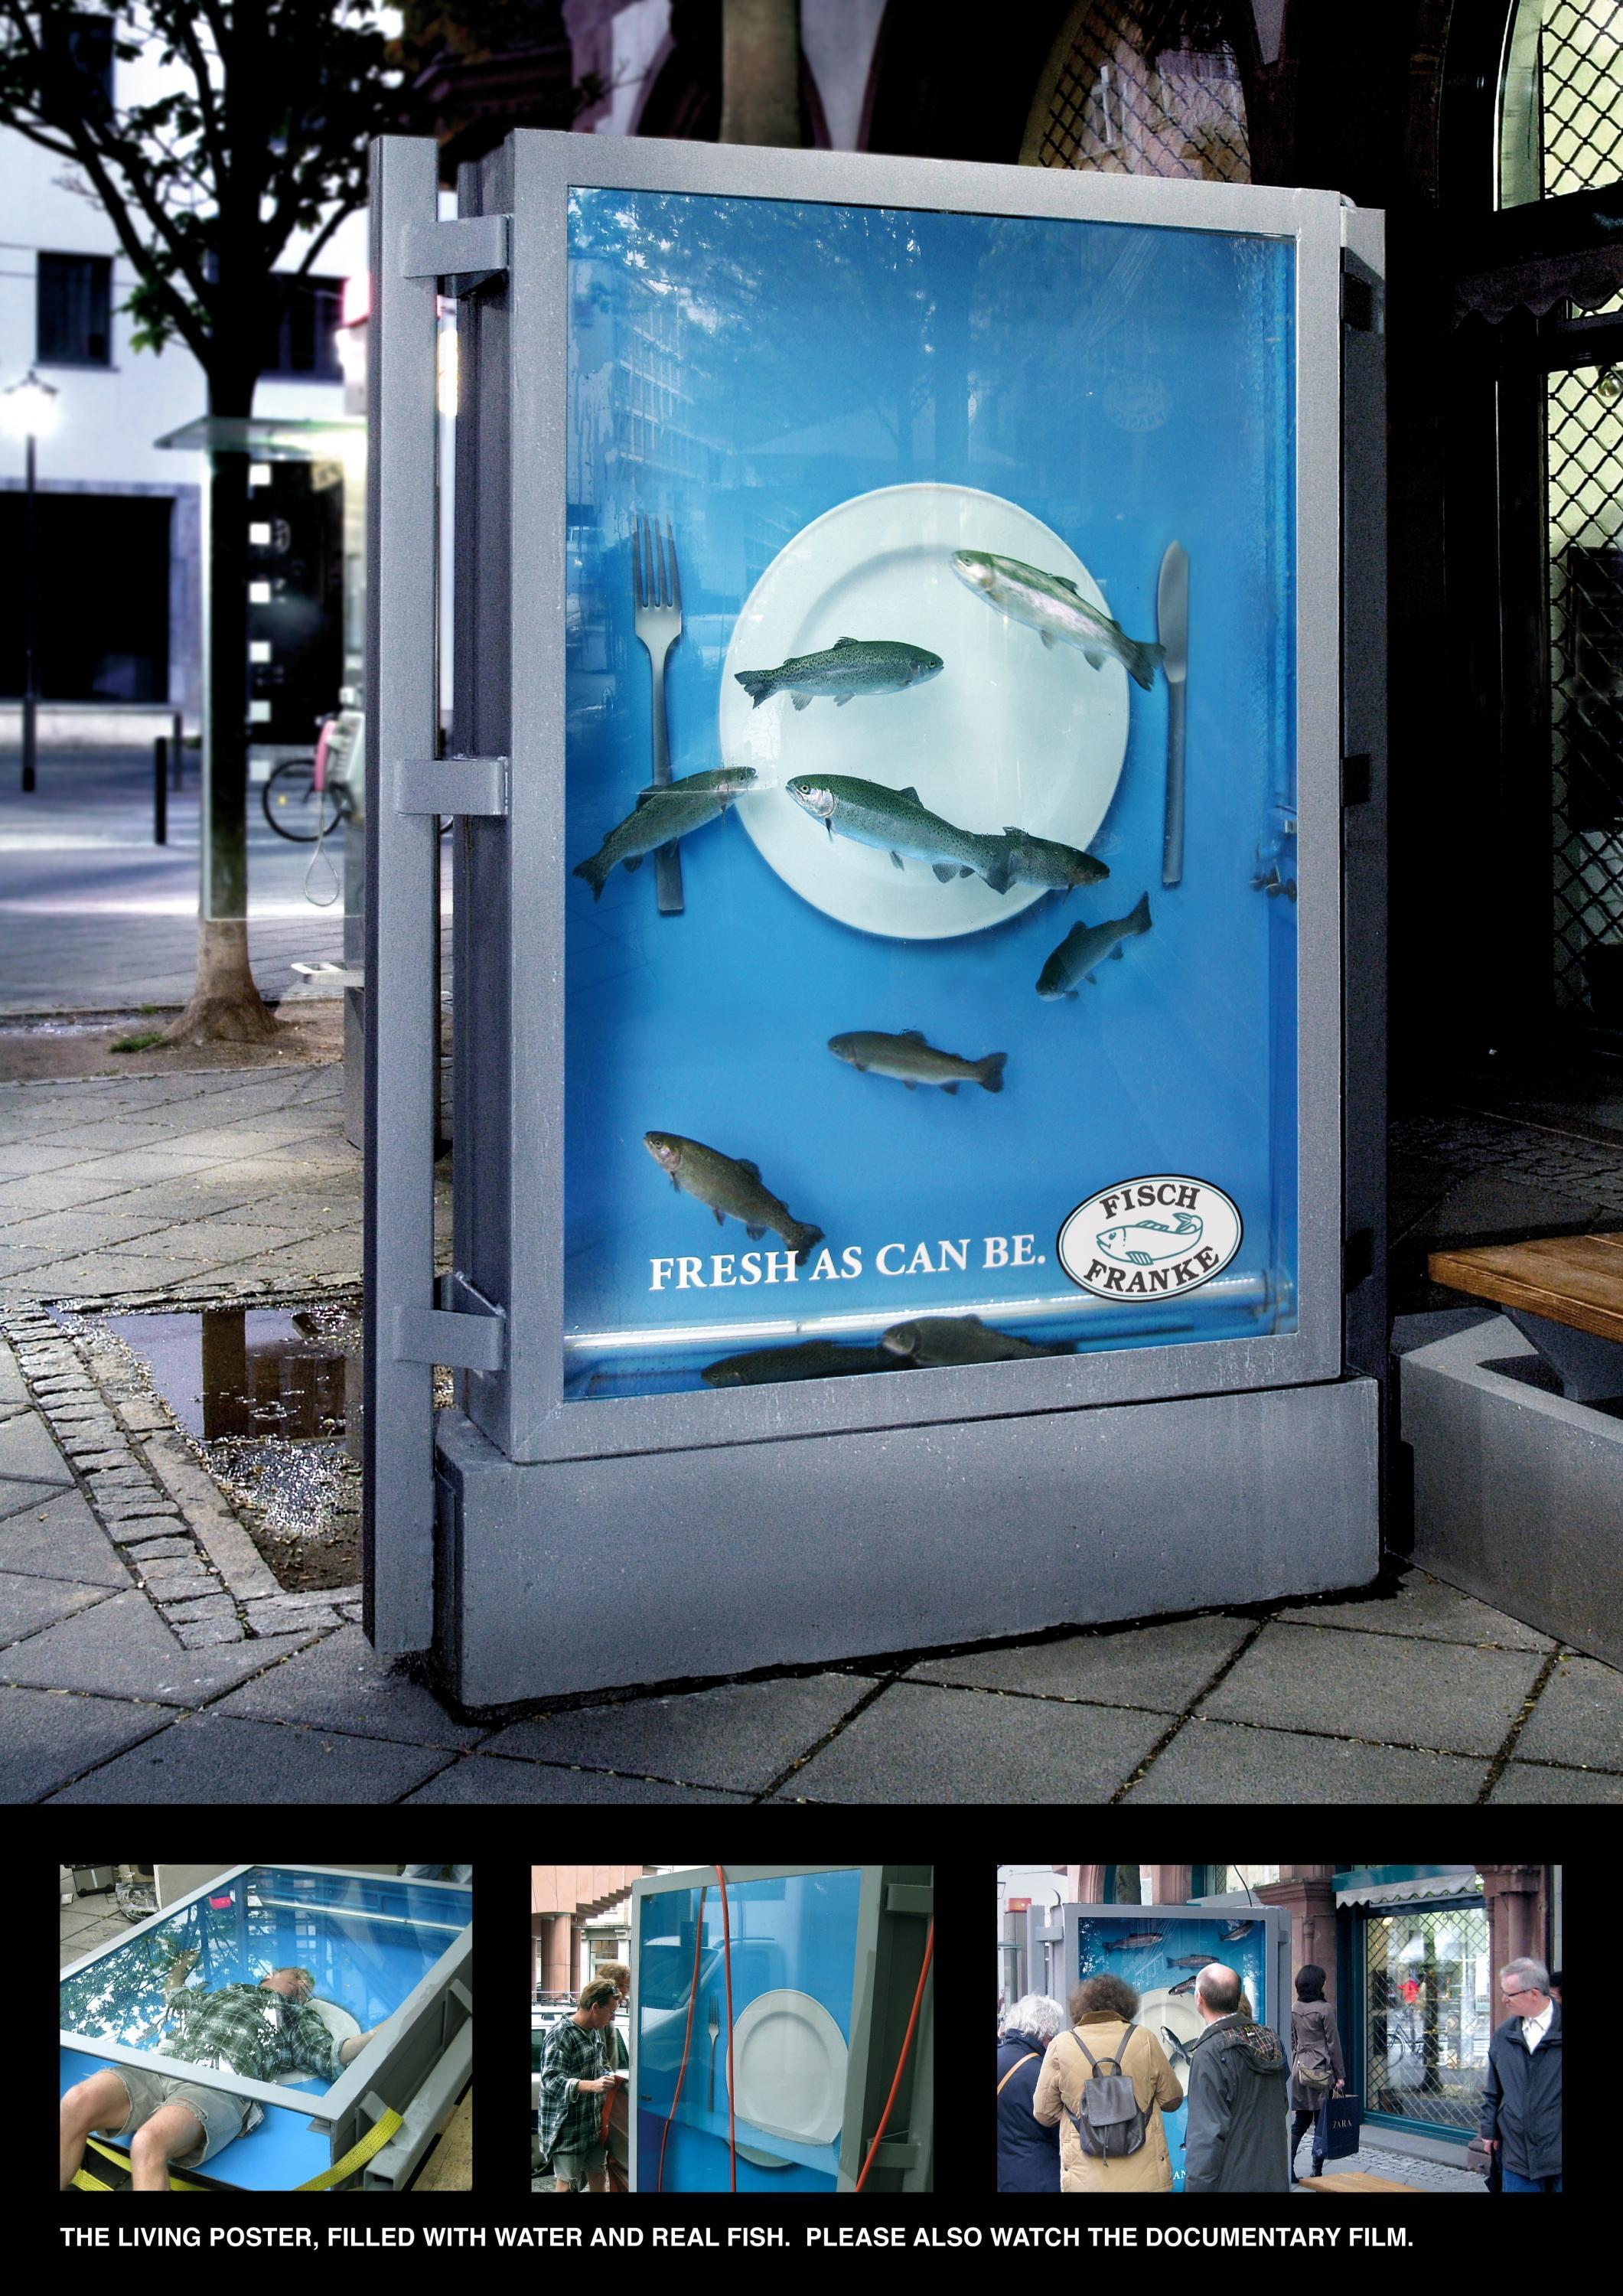 Adeevee Only Selected Creativity Fisch Franke Fish Restaurant The Living Poster